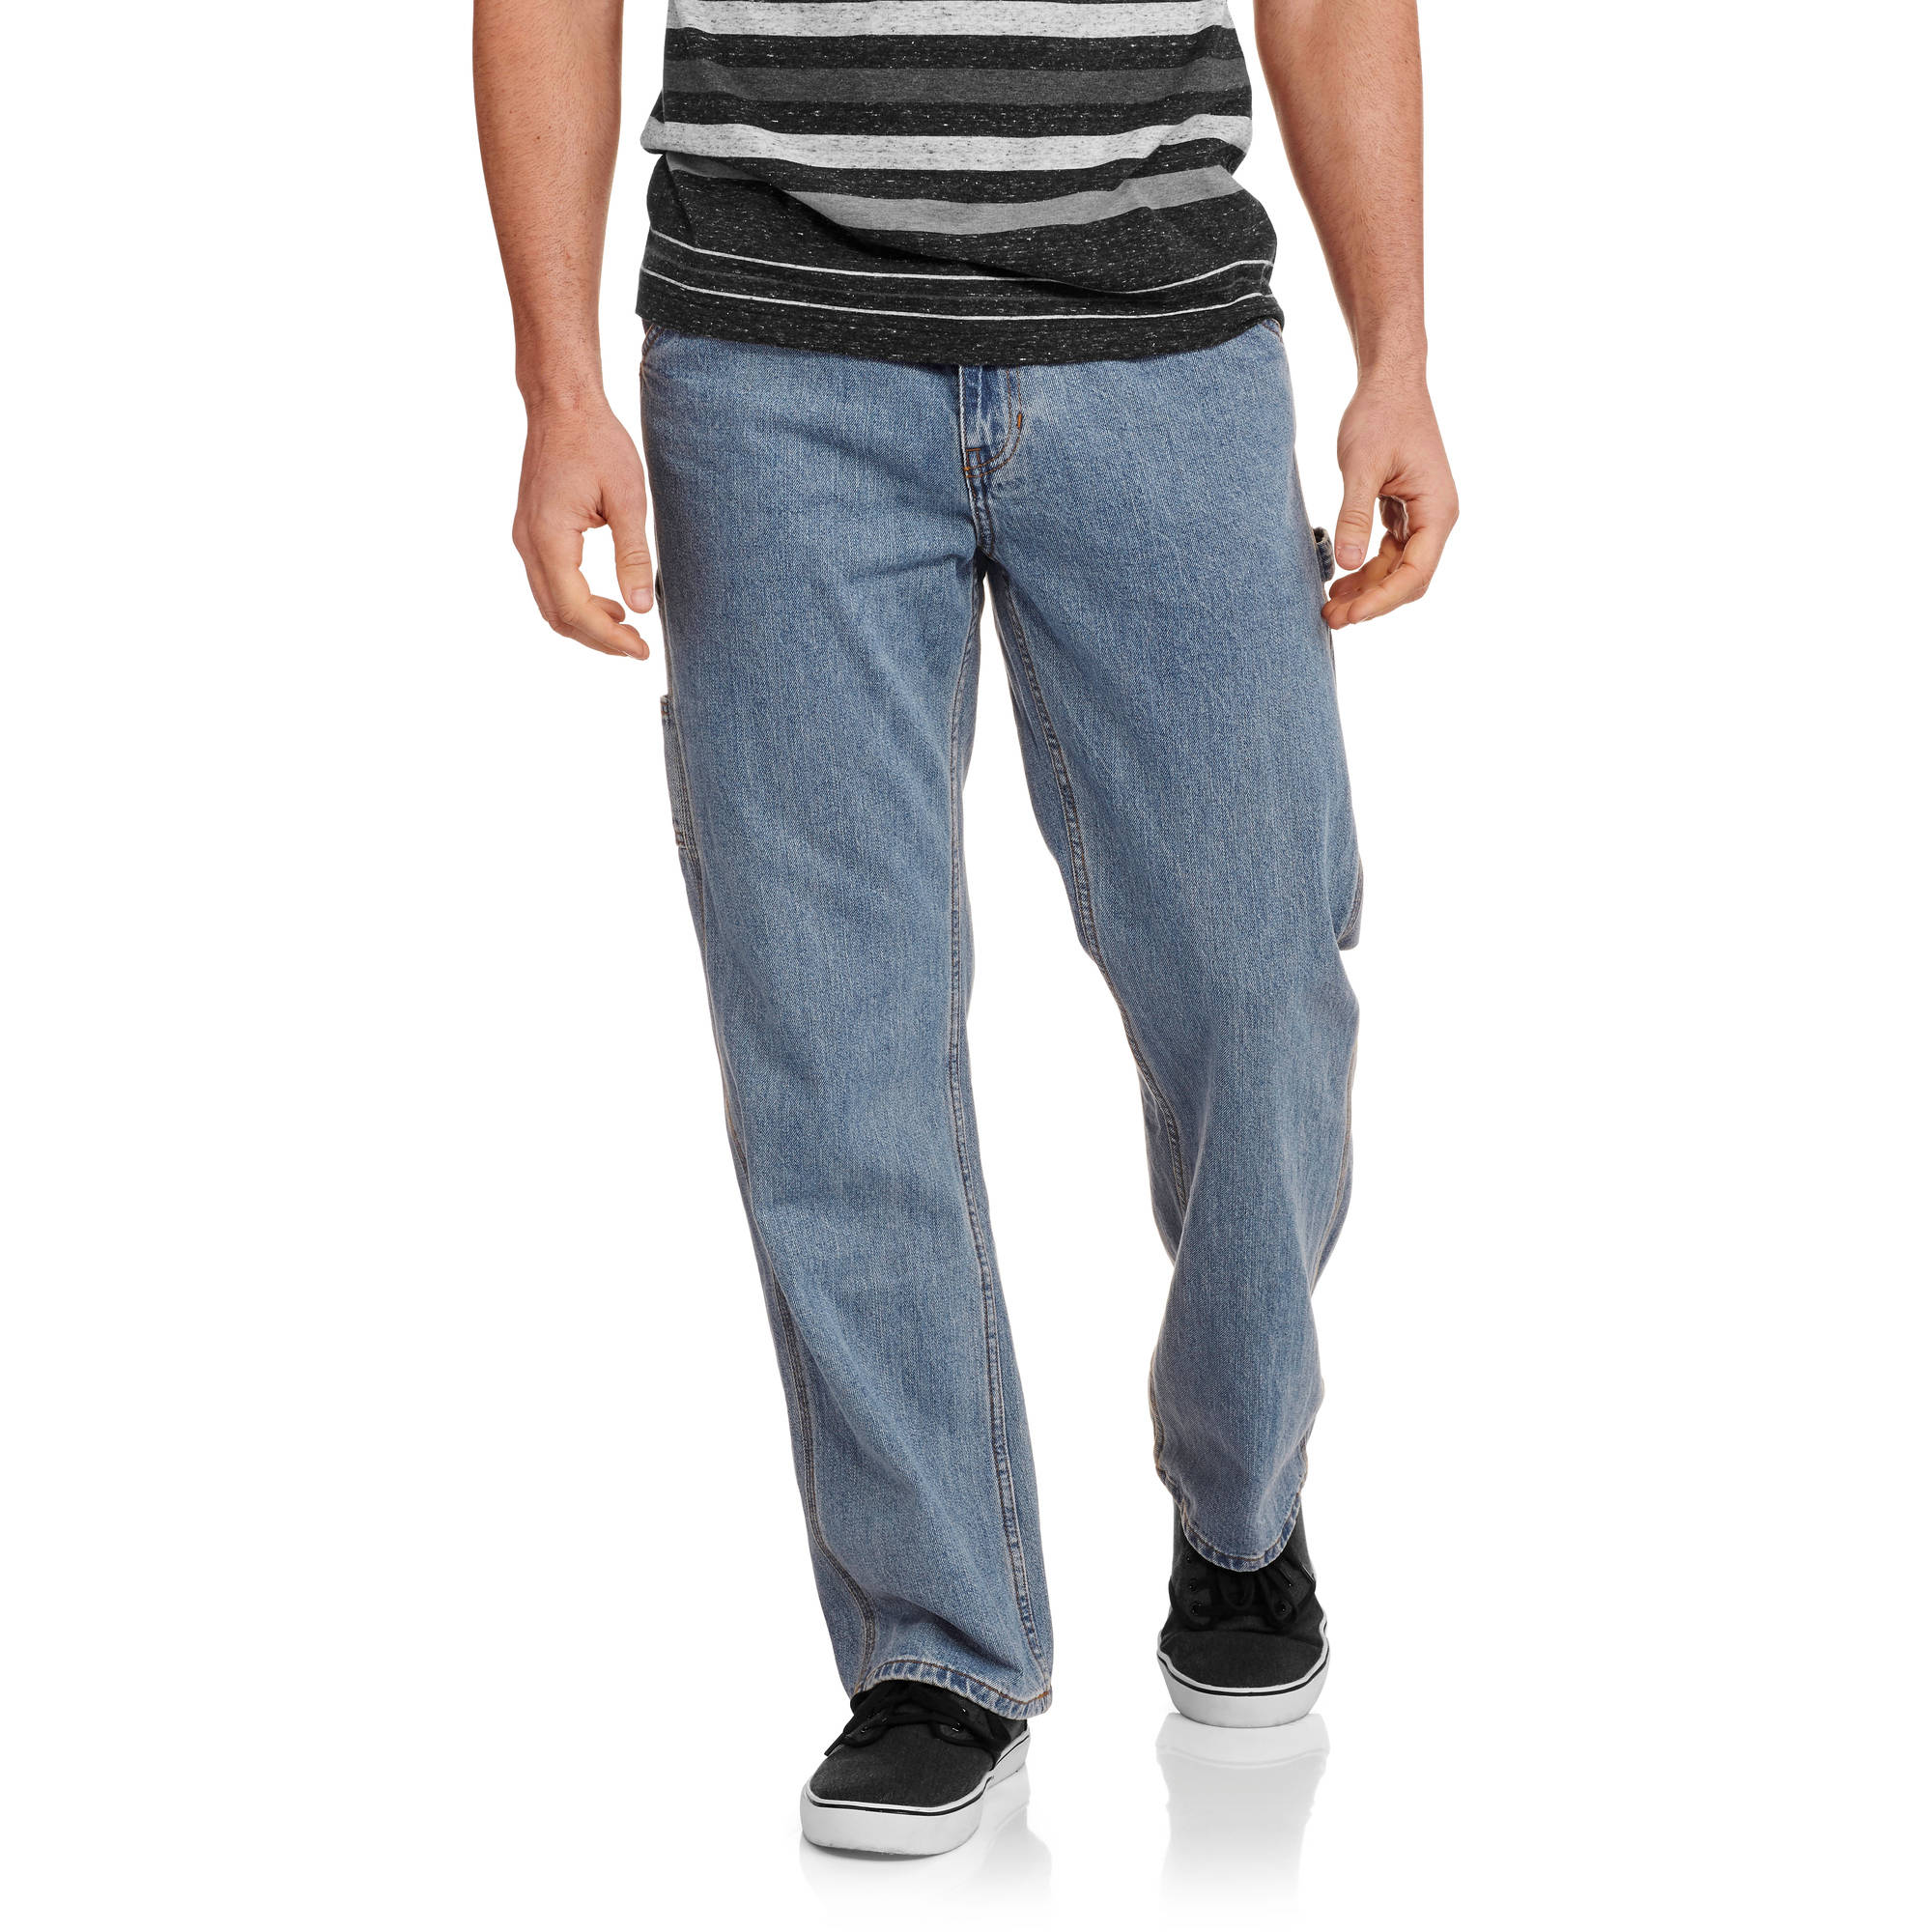 Faded Glory Men's Carpenter Jeans